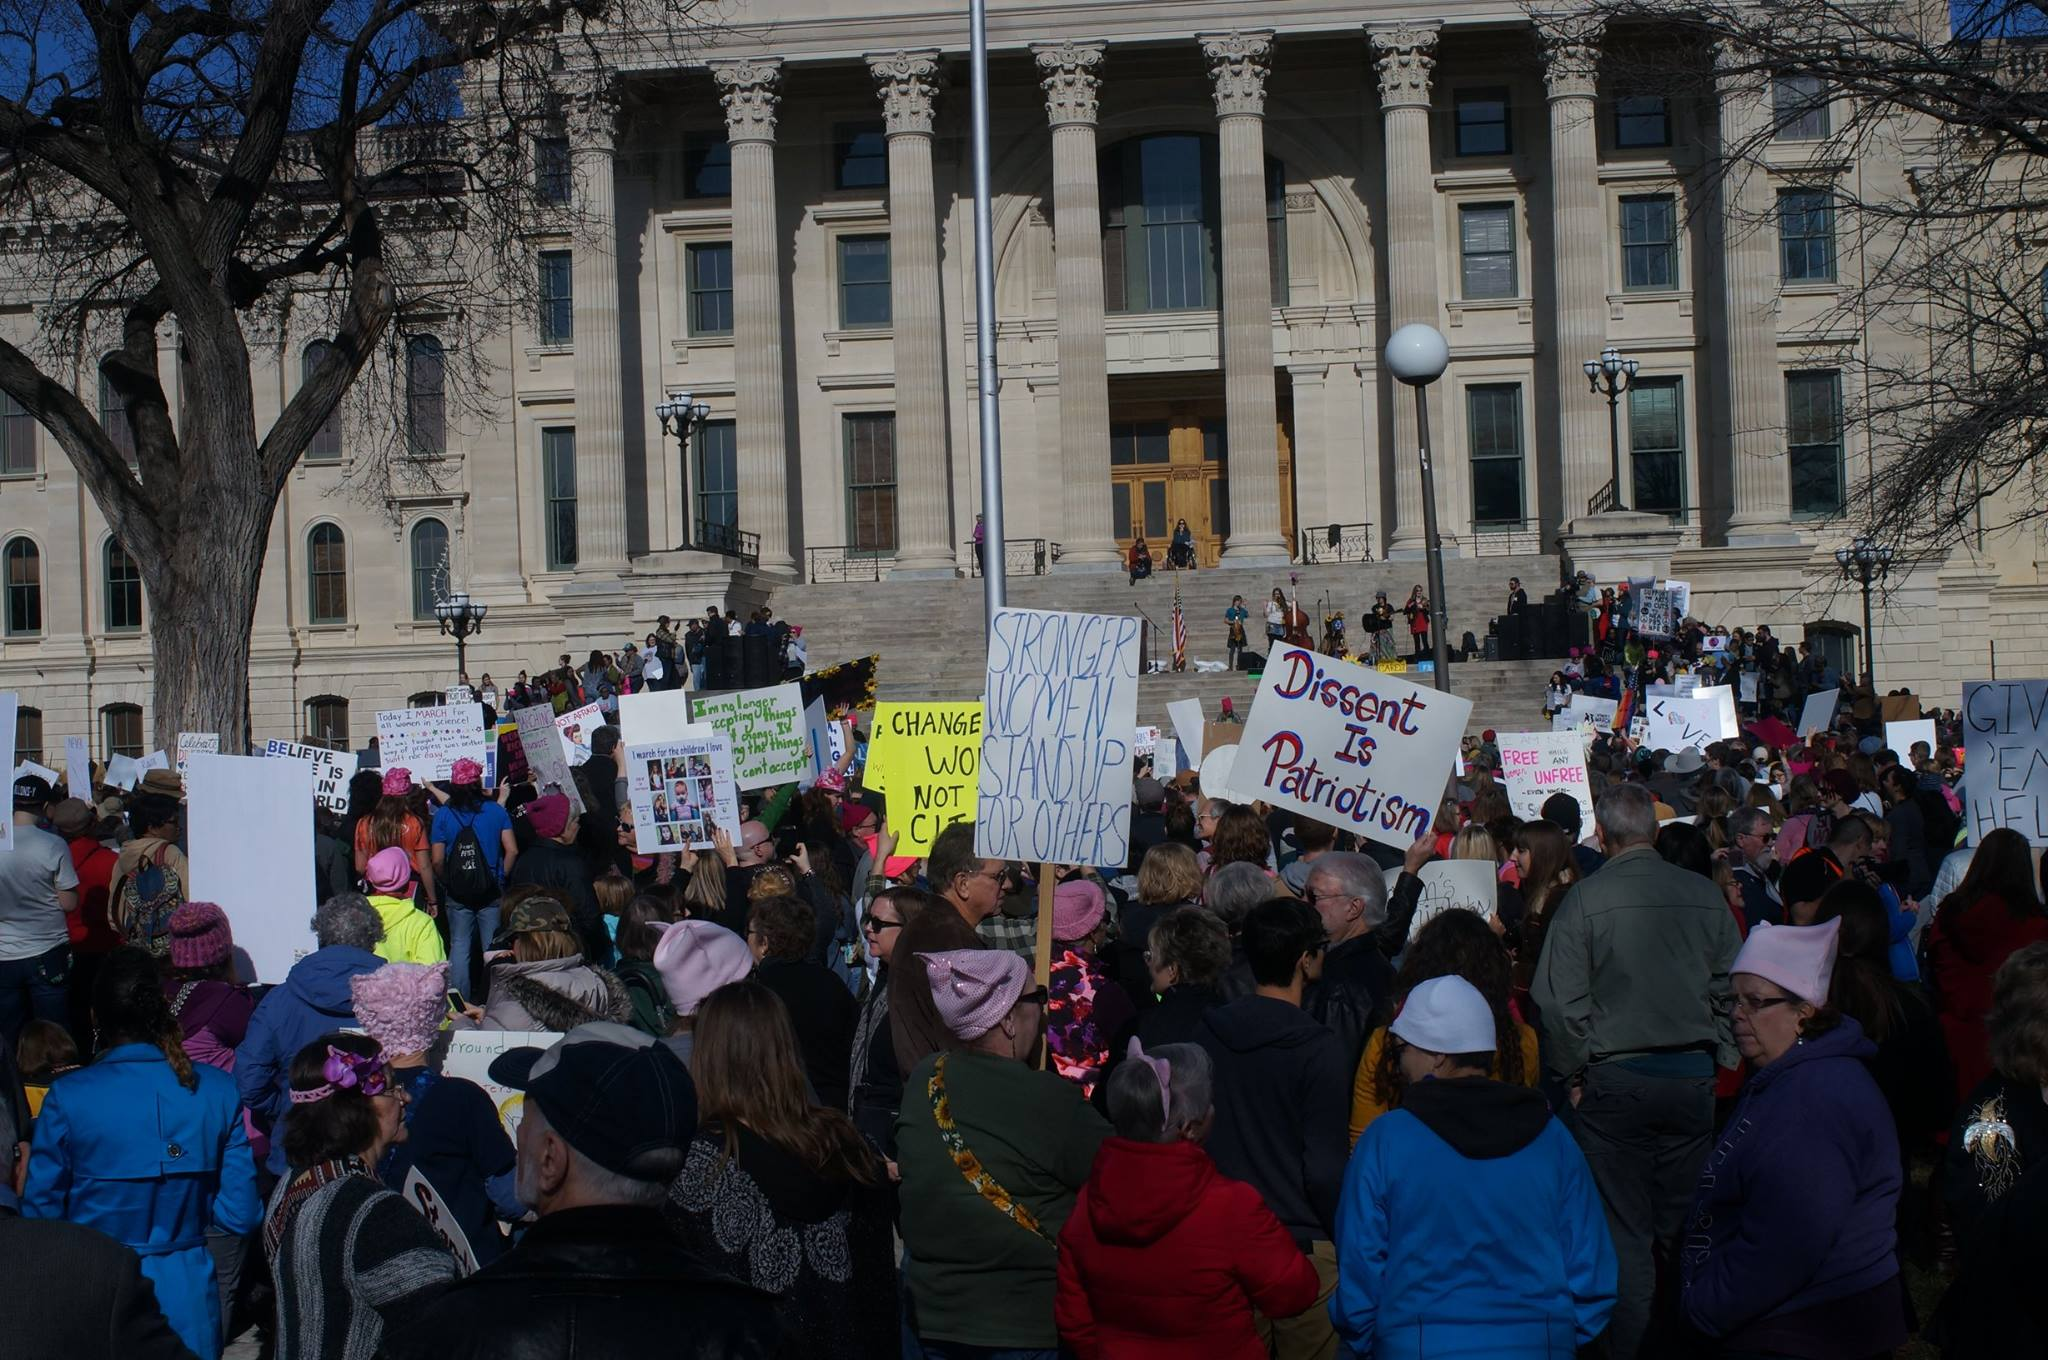 Protesters rallied in Topeka Saturday against President Donald Trump. This was one of many protests held in cities across the country, in conjunction with the Women's March on Washington. (Photo by Dan Mantyla)